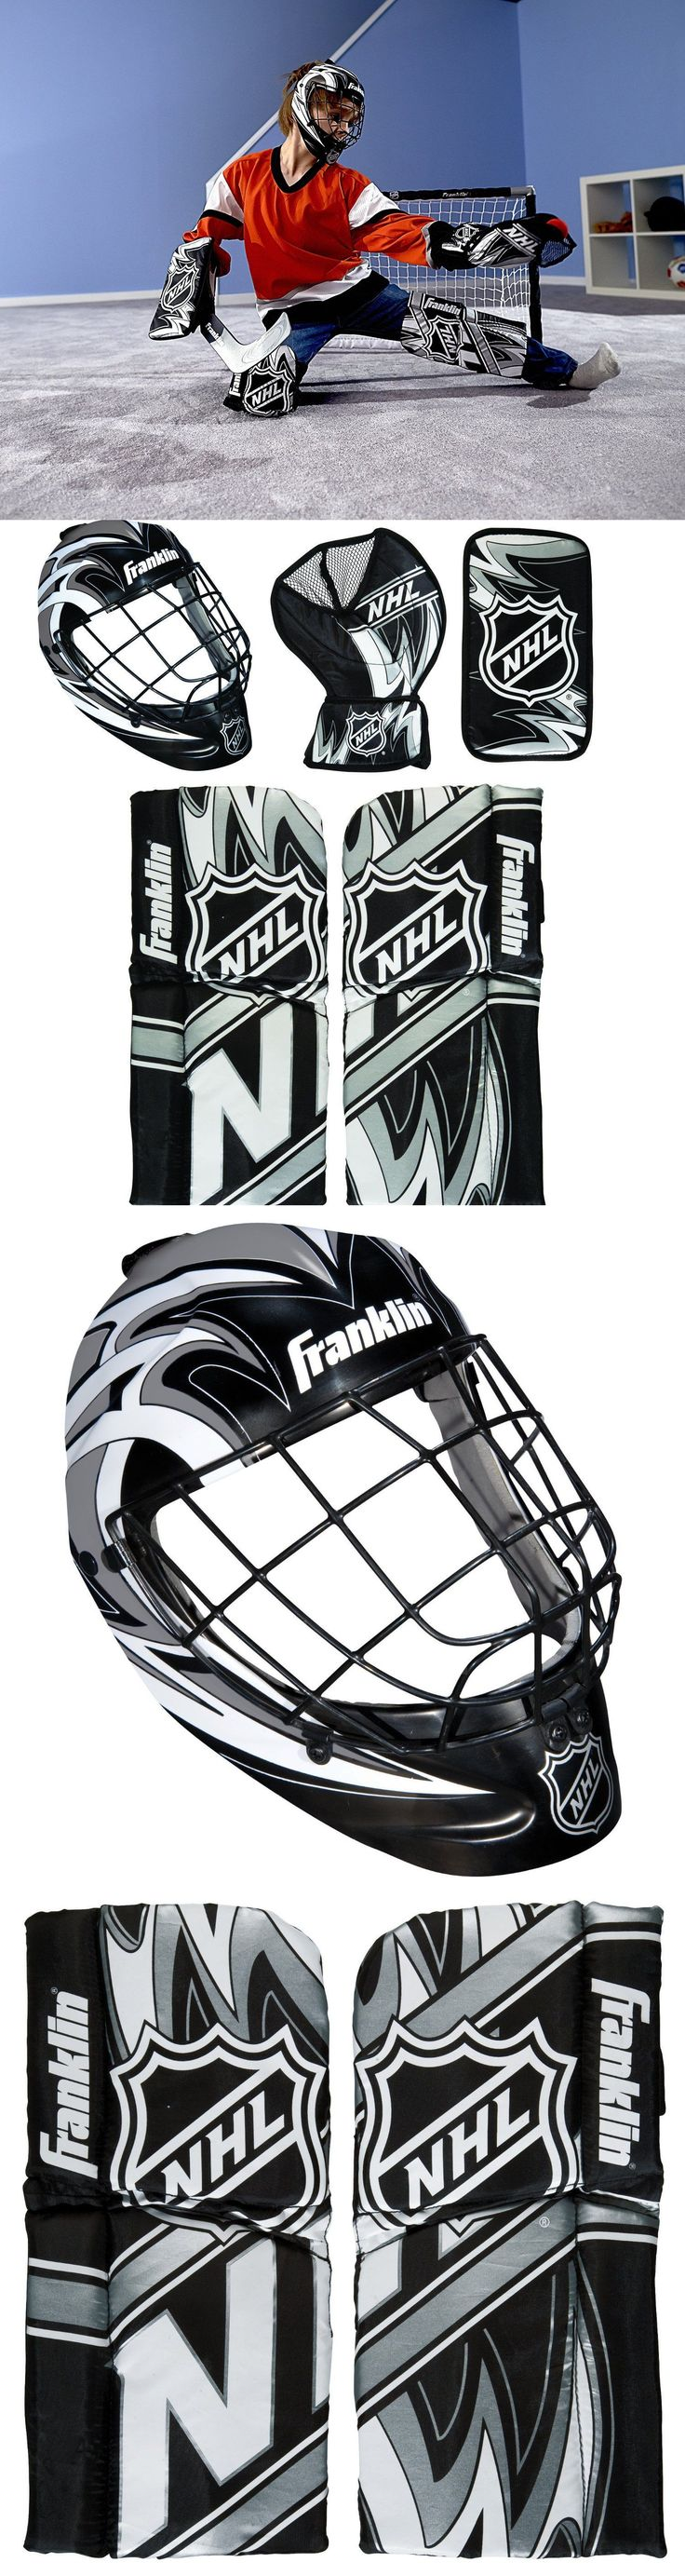 Other Hockey Goalie Equipment 79765: Kids 5P Hockey Mini Goalie Equipment For Small Net Mask Glove Knee Pads Ages 3-6 BUY IT NOW ONLY: $55.98